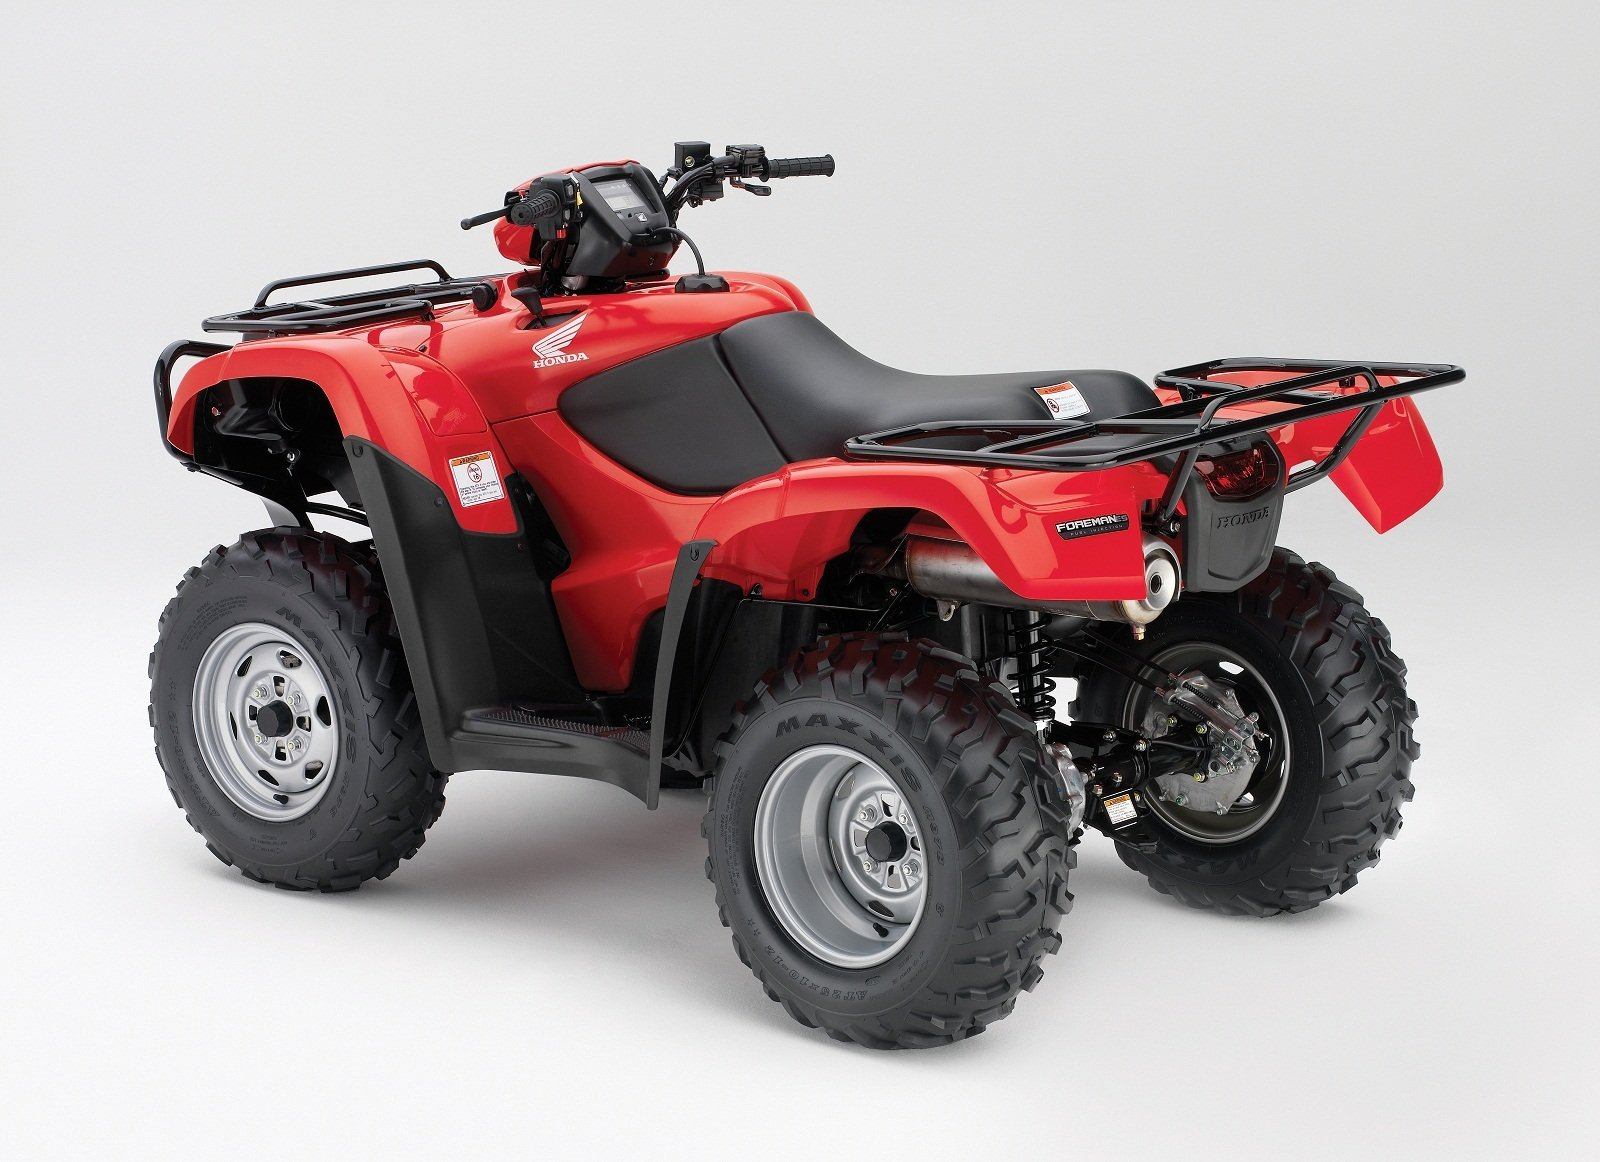 2012 honda fourtrax foreman 4x4 es picture 411290 motorcycle review top speed. Black Bedroom Furniture Sets. Home Design Ideas